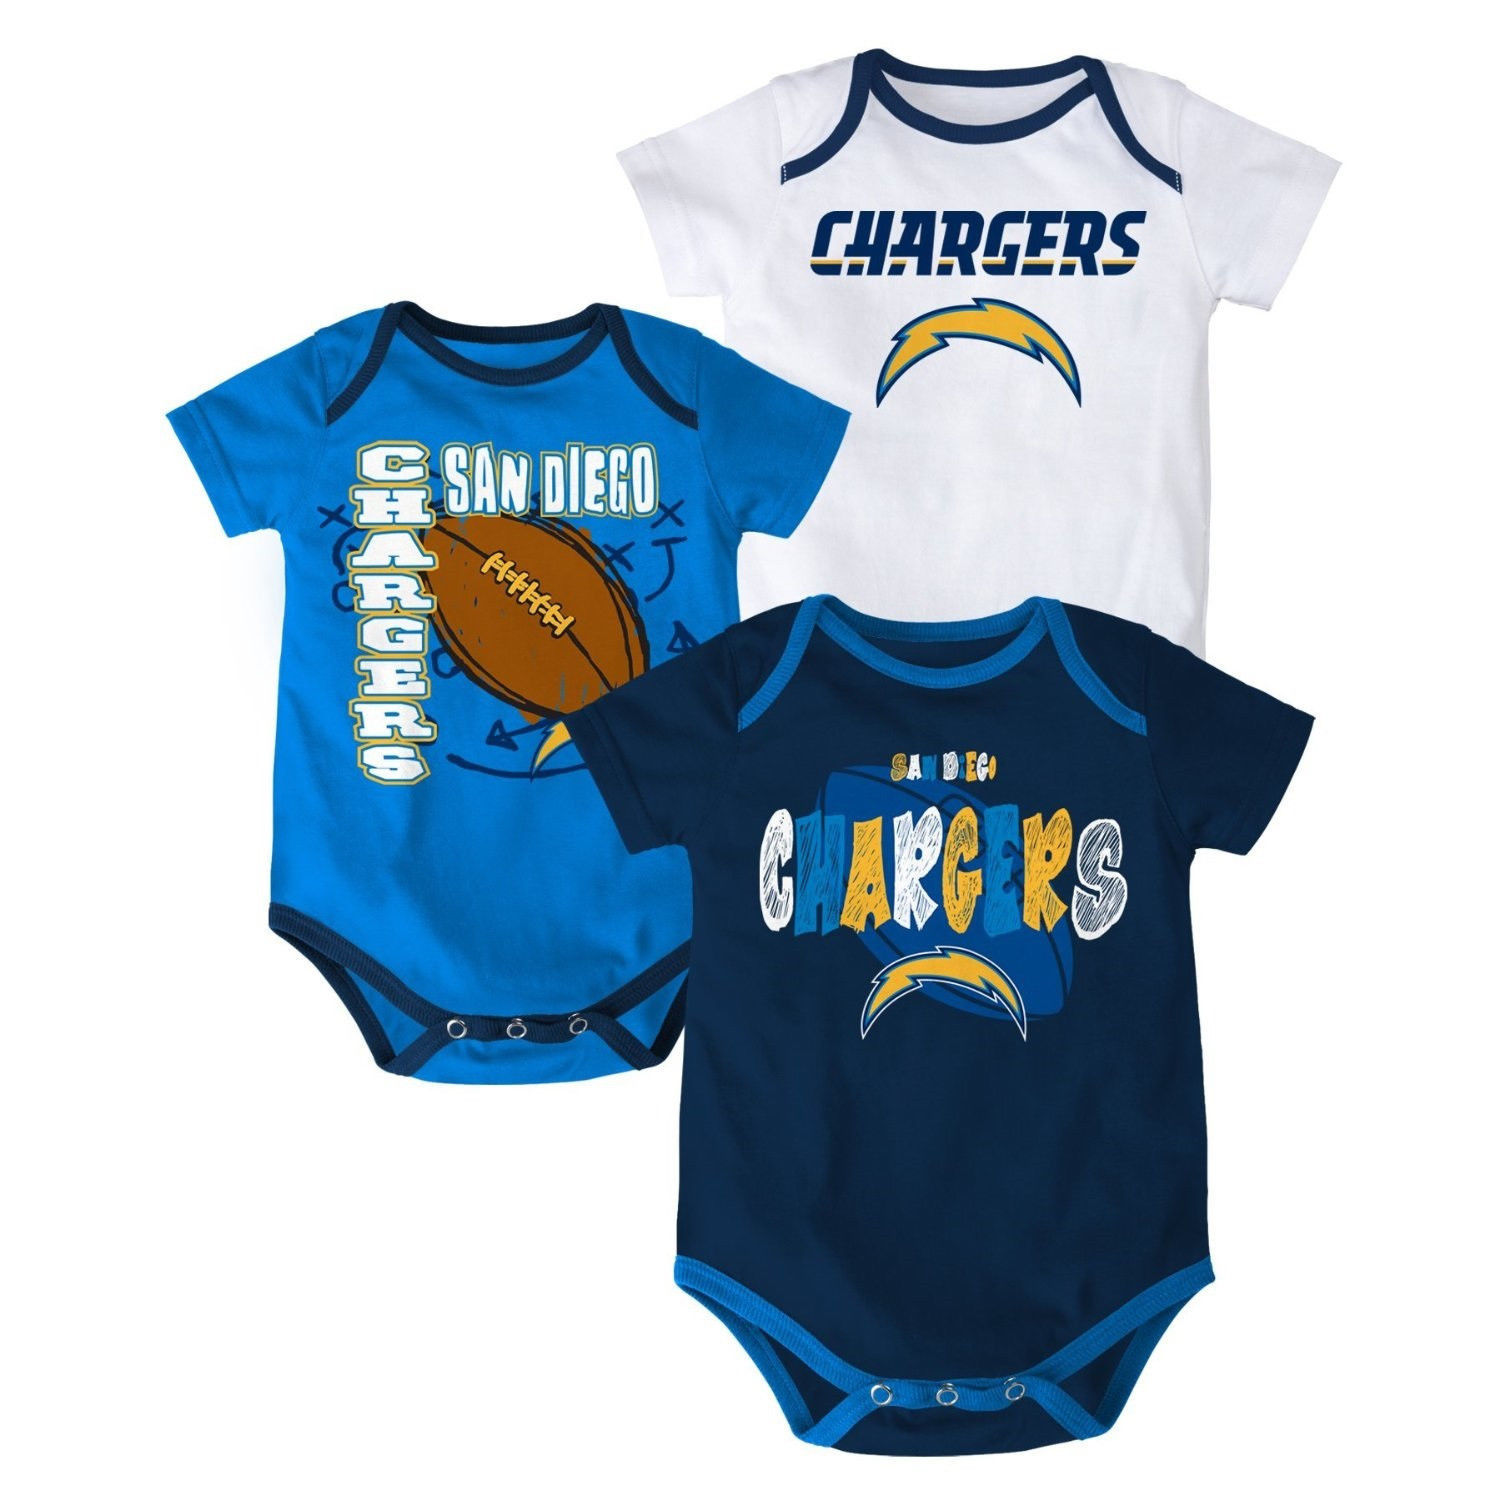 San Diego Chargers Infant Bodysuit NFL 3-point Spread Baby Set of 3 Shirts